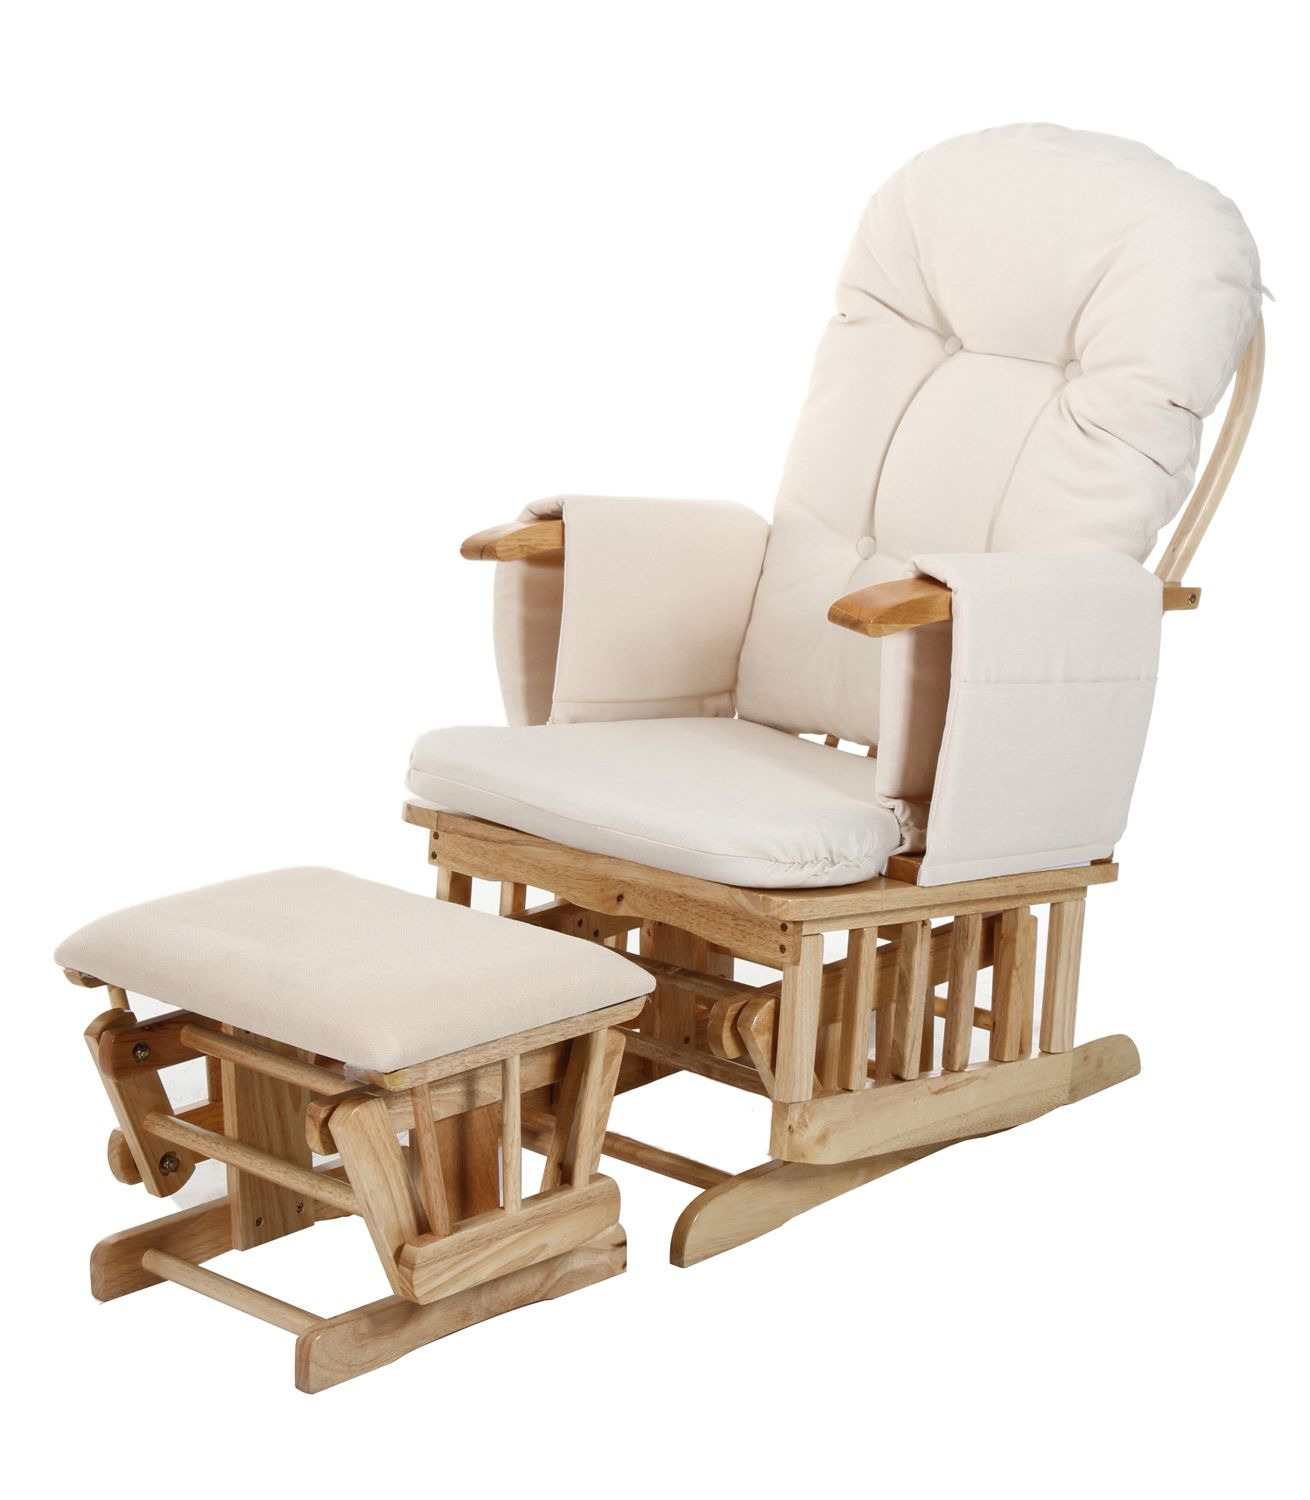 Buy your Baby Weavers Recline Glider & Stool from Kiddicare